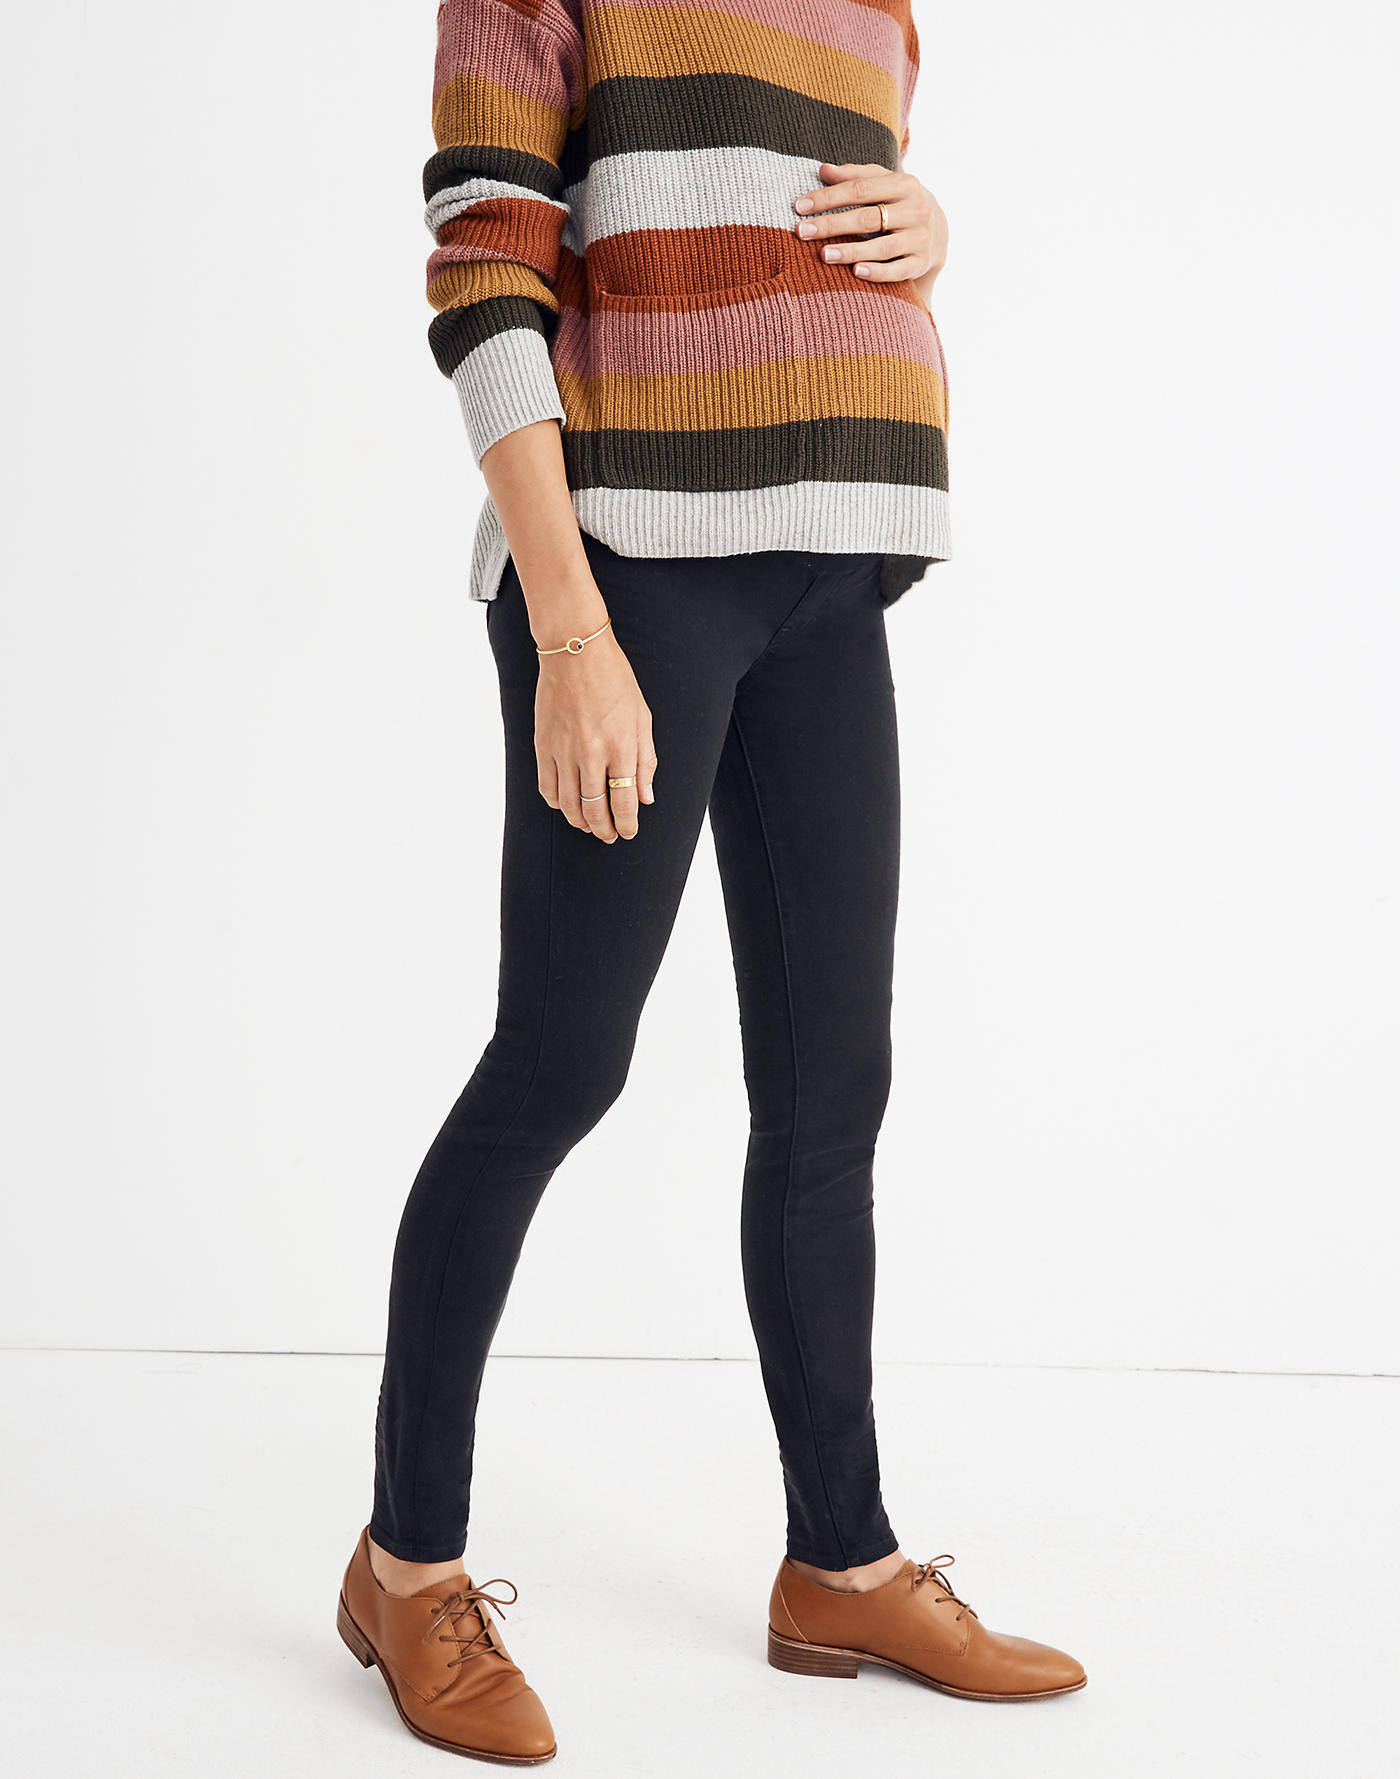 Madewell Maternity Over-the-Belly Skinny Jeans in Lunar Wash: TENCEL Denim Edition